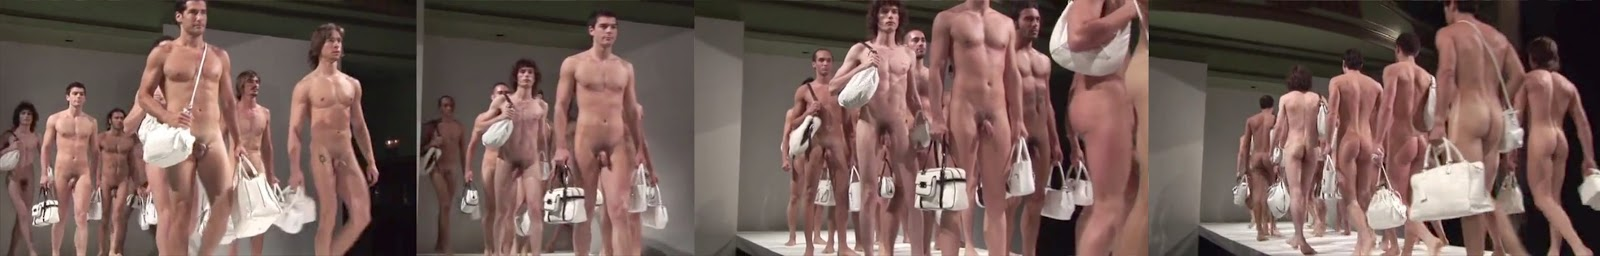 hung naked models boys